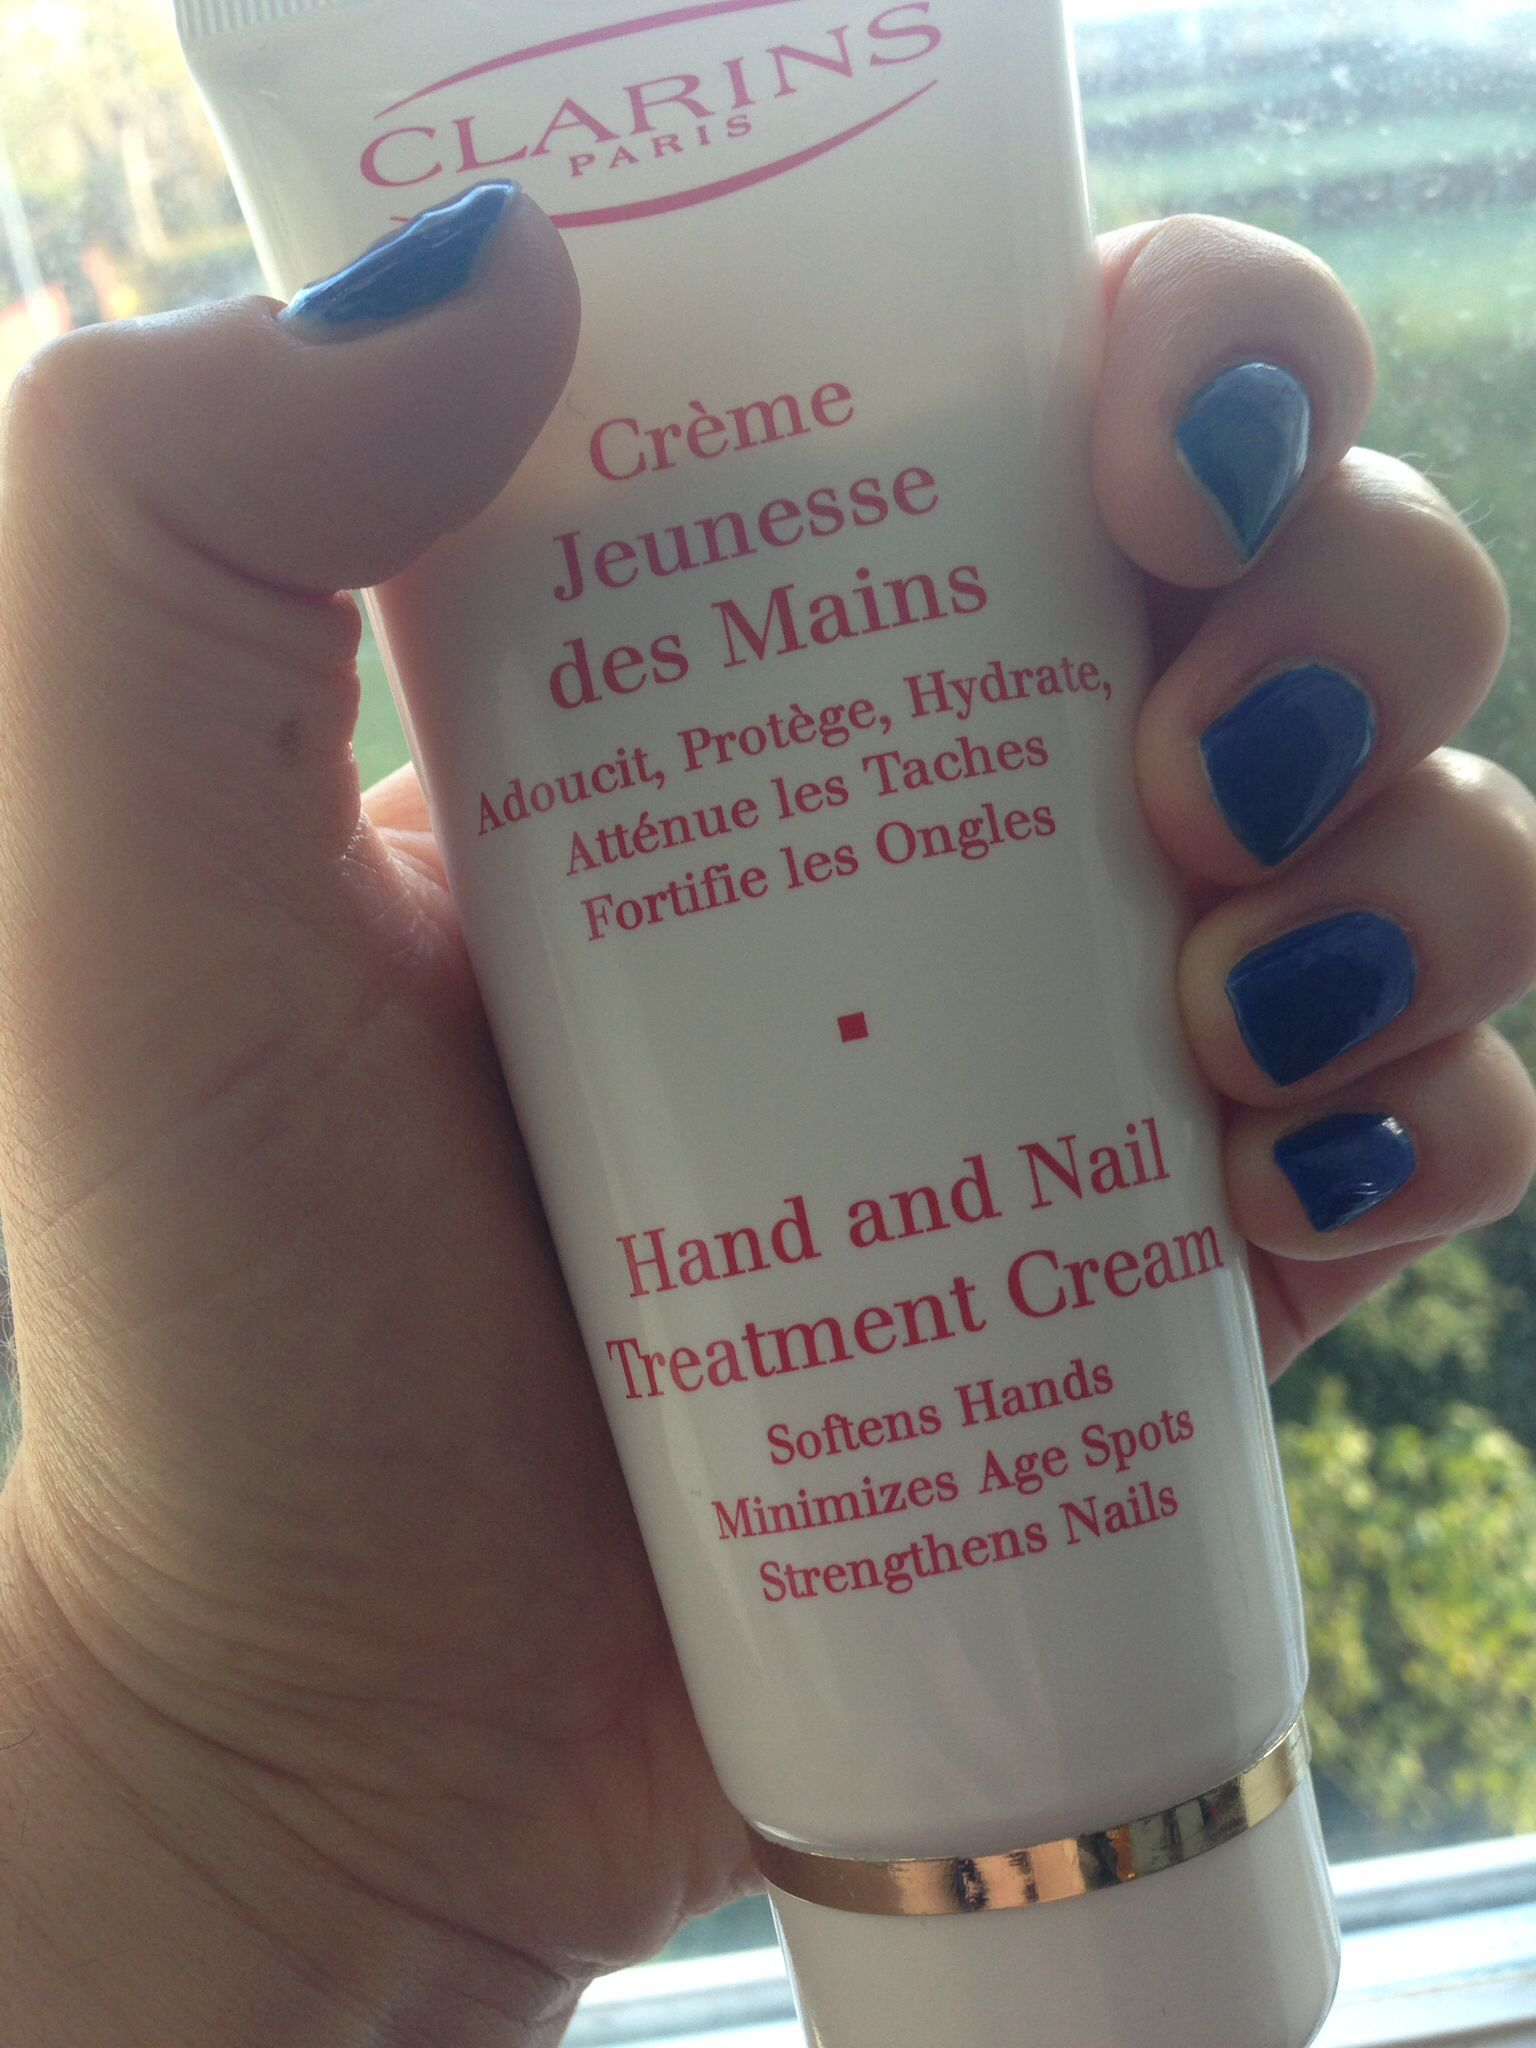 Favourite Clarins hand cream